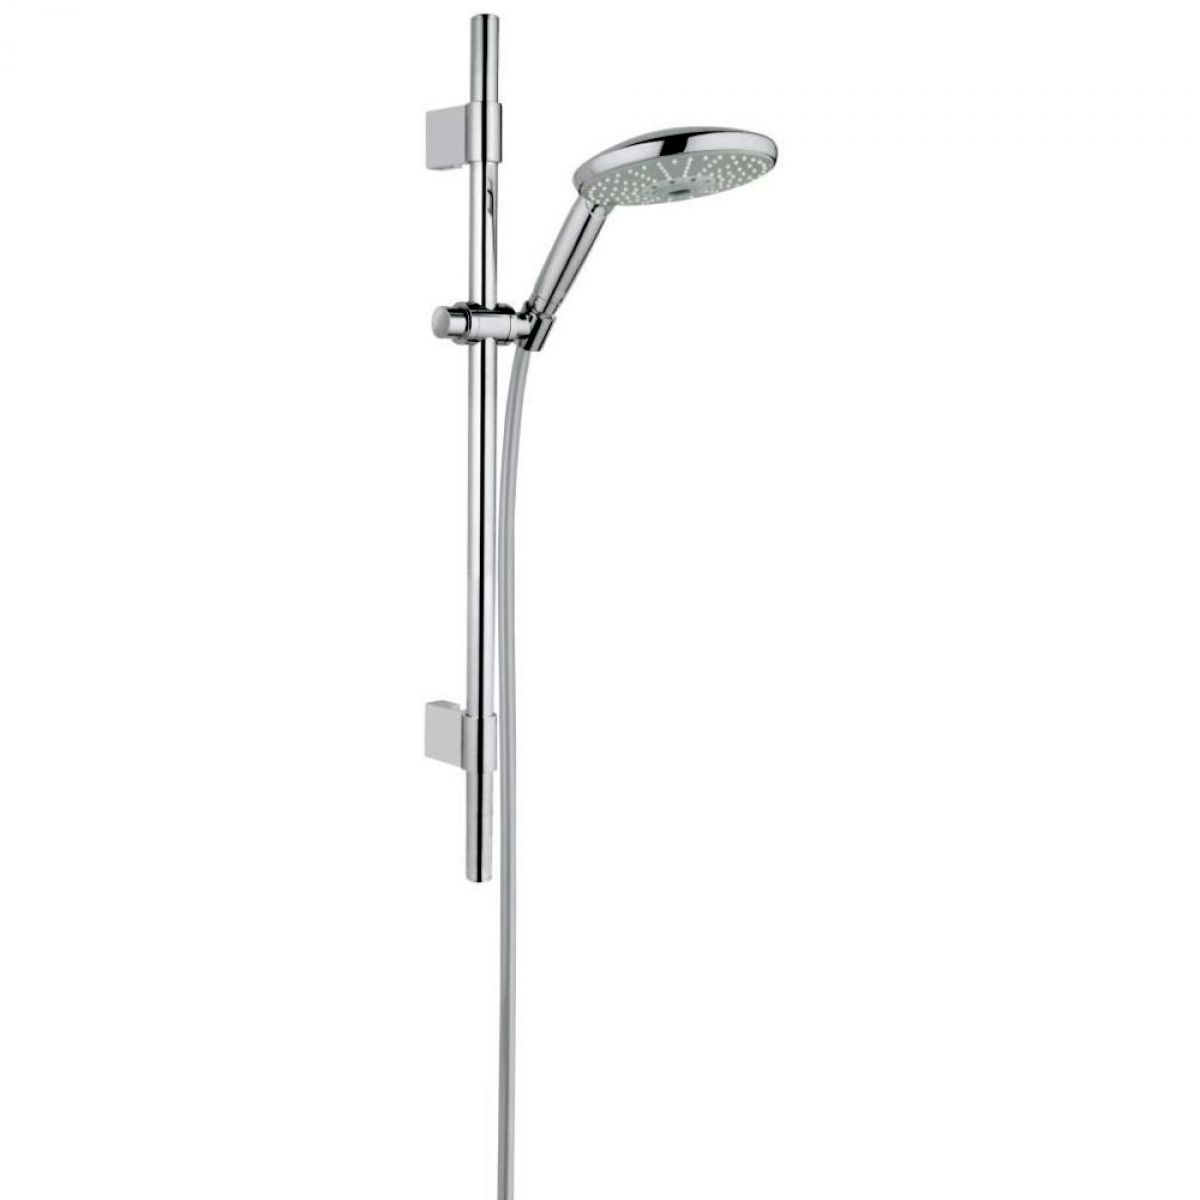 grohe rainshower classic shower set uk bathrooms. Black Bedroom Furniture Sets. Home Design Ideas